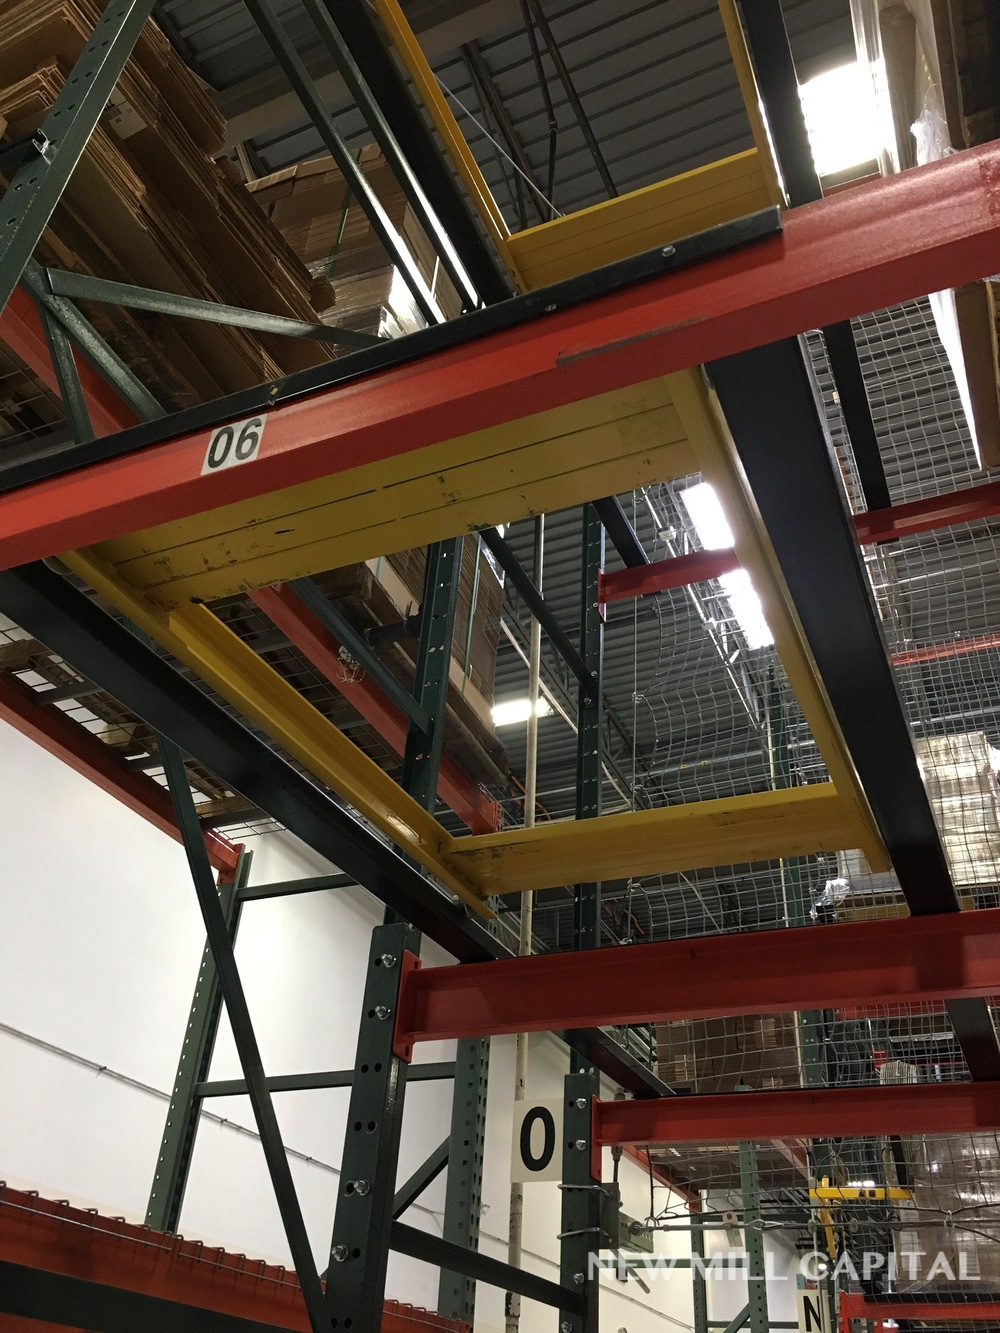 Lot 15 - Bolt Up Pallet Rack, (2) Sections, First Section - (17) Uprights (Columns | Rig: See Lot Description